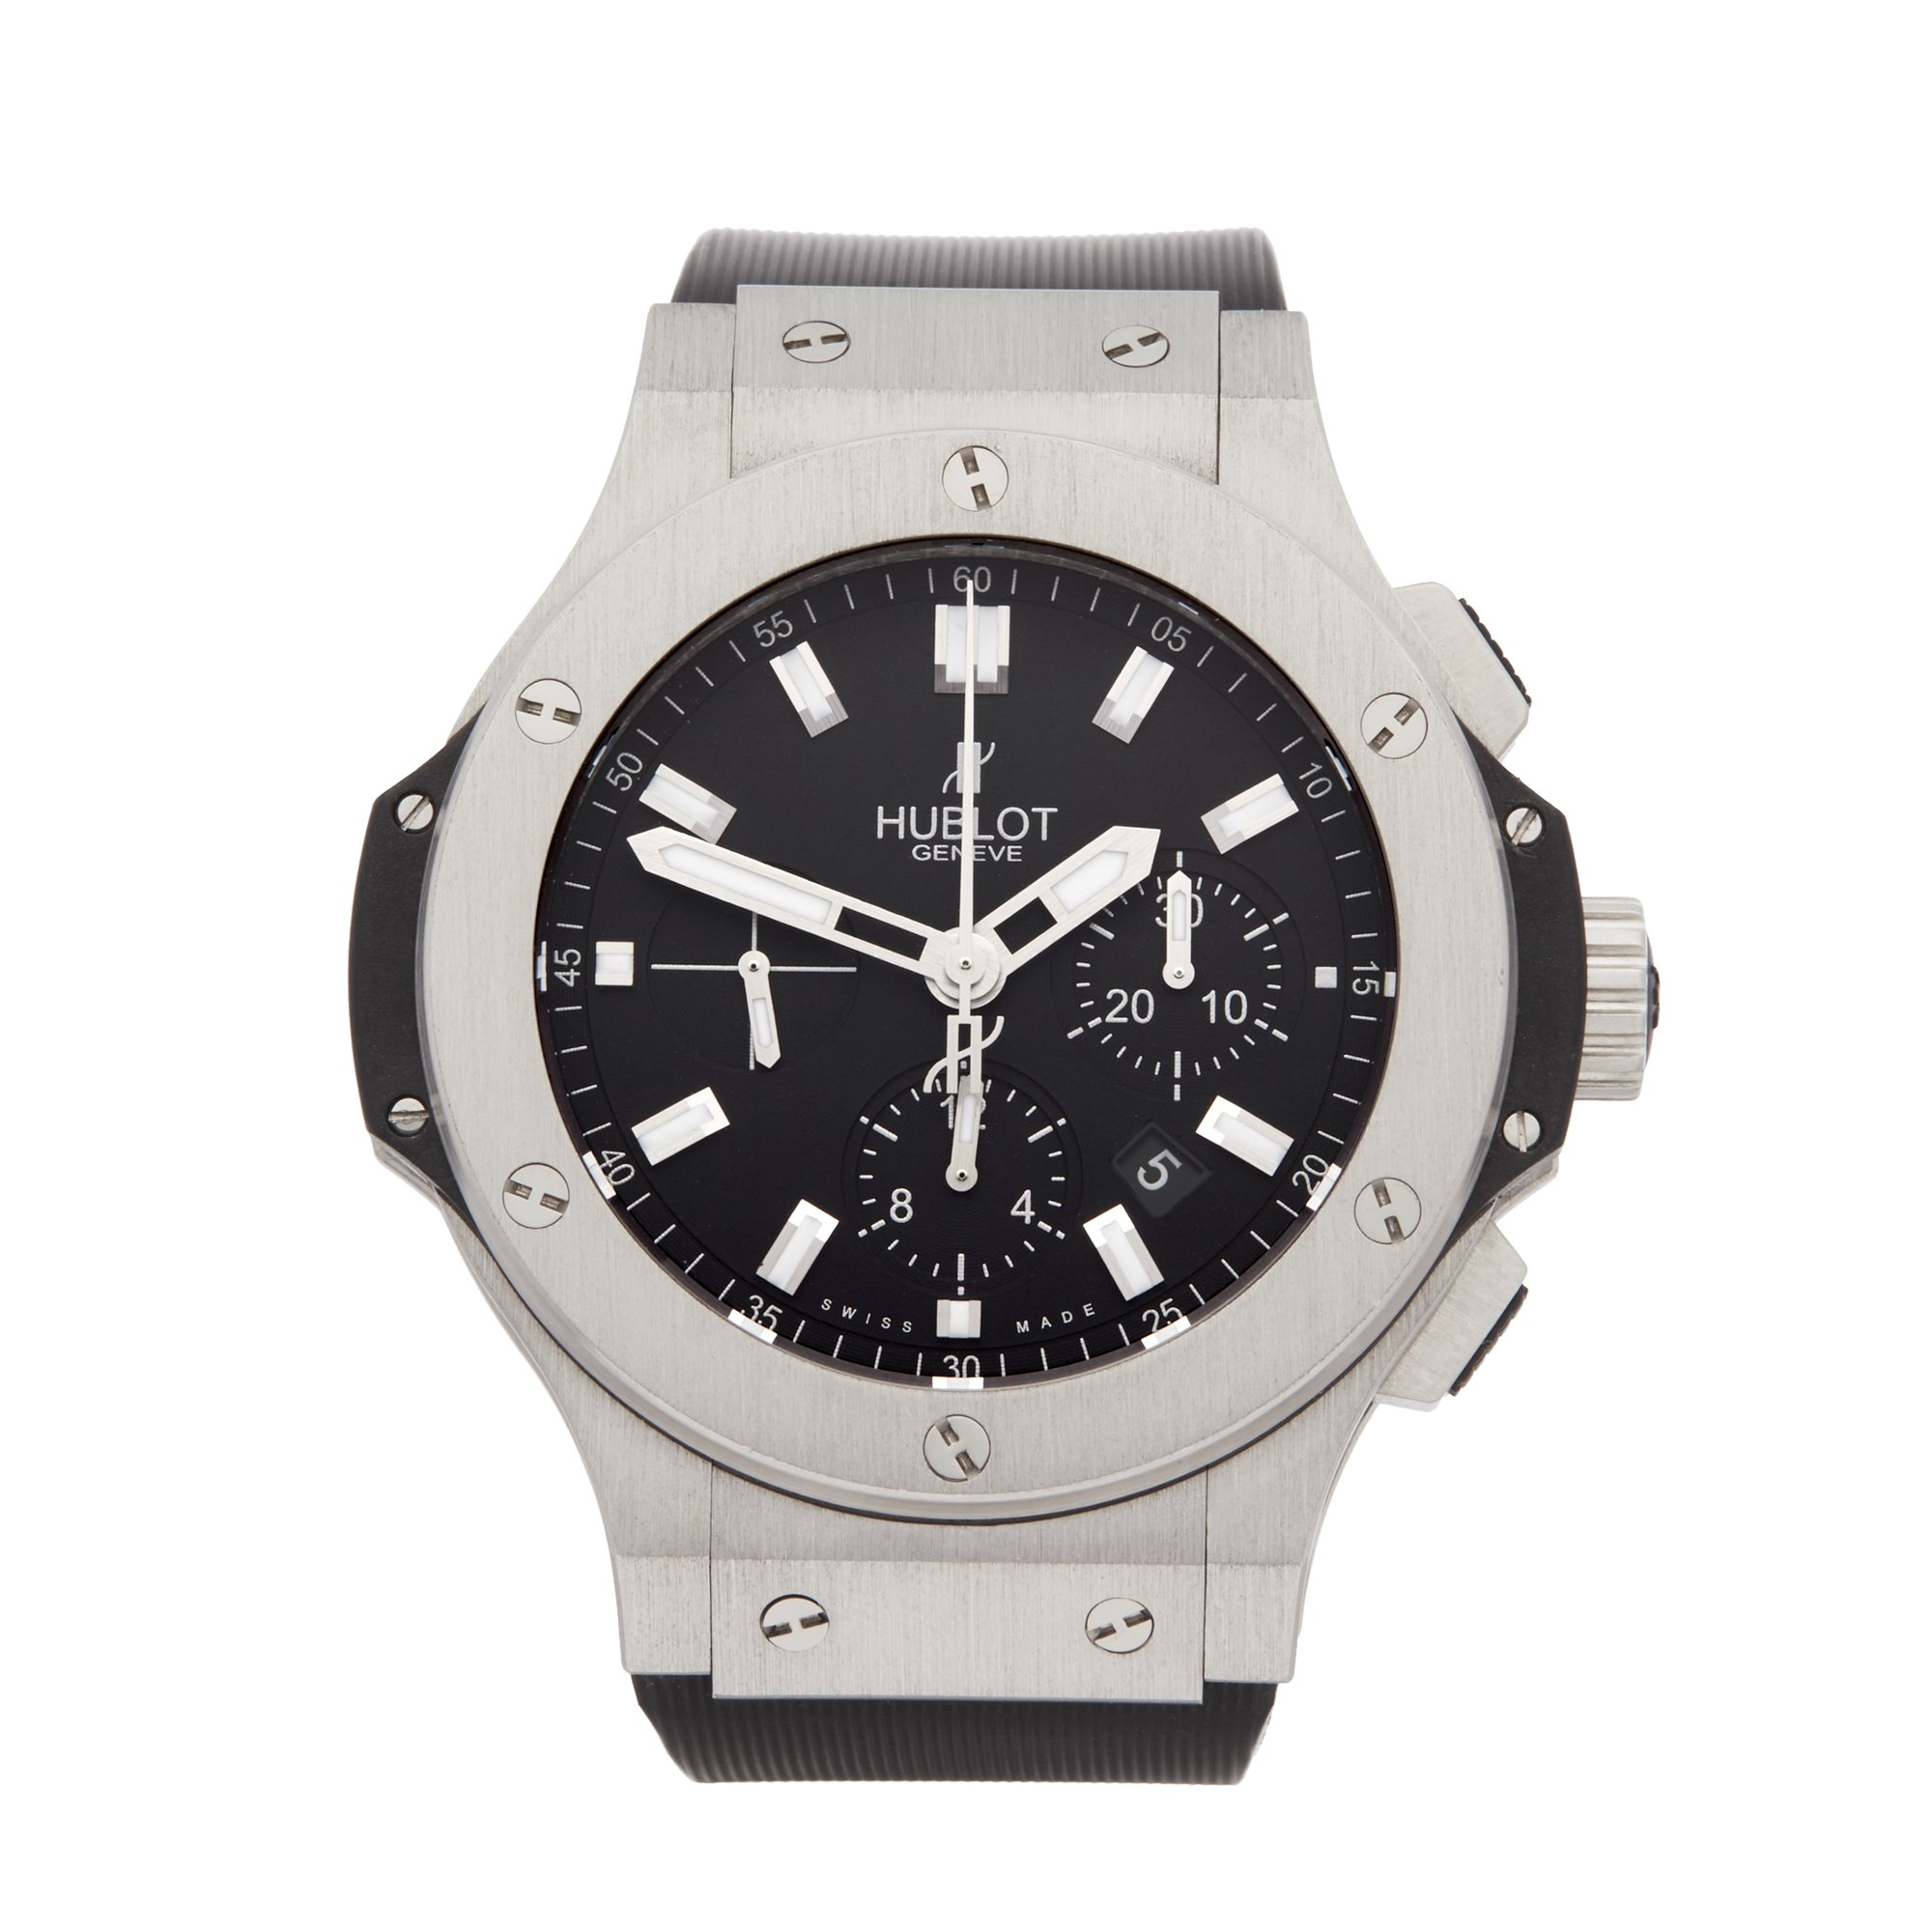 Hublot Big Bang Chronograph Stainless Steel 301.SX.1170.RX